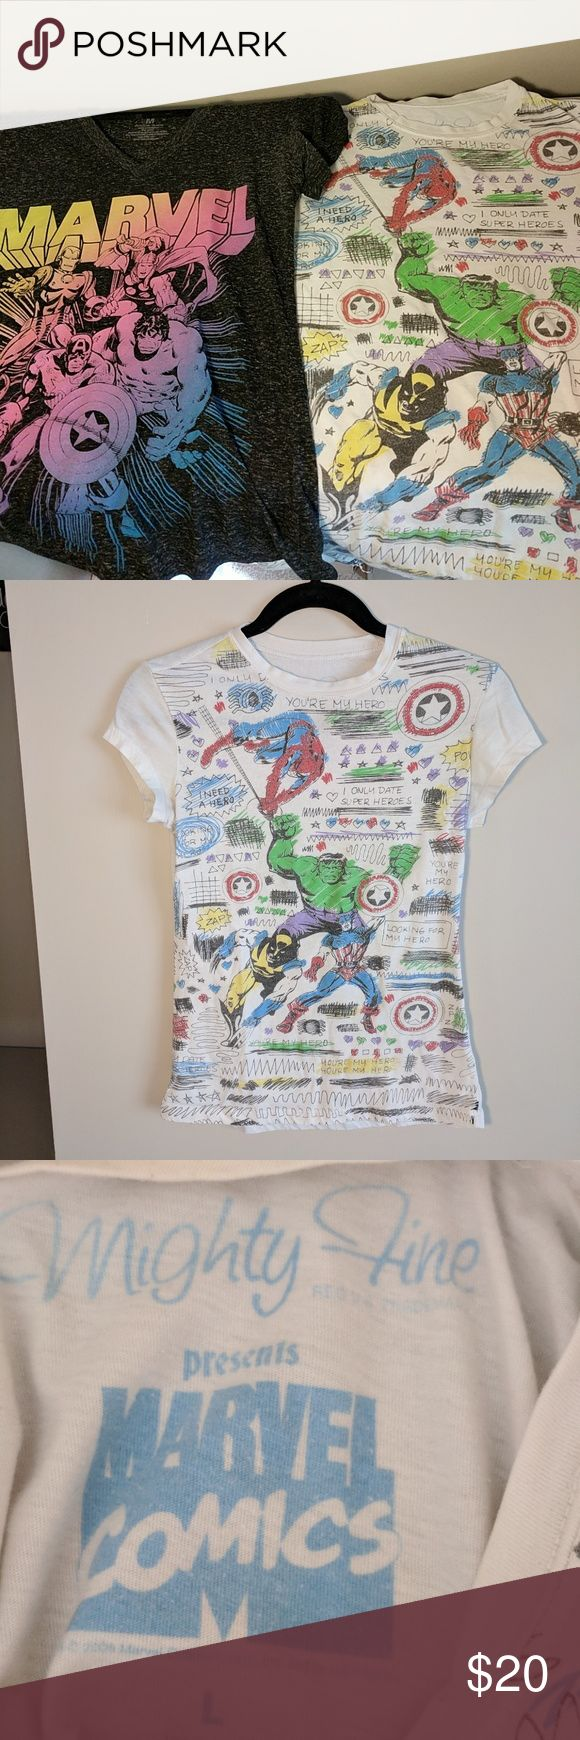 Marvel Super Hero T-shirt Duo Two amazing marvel superhero shirts. White shirt is a size L but fits like a women's small. Gray shirt is a women's medium. Marvel Tops Tees - Short Sleeve